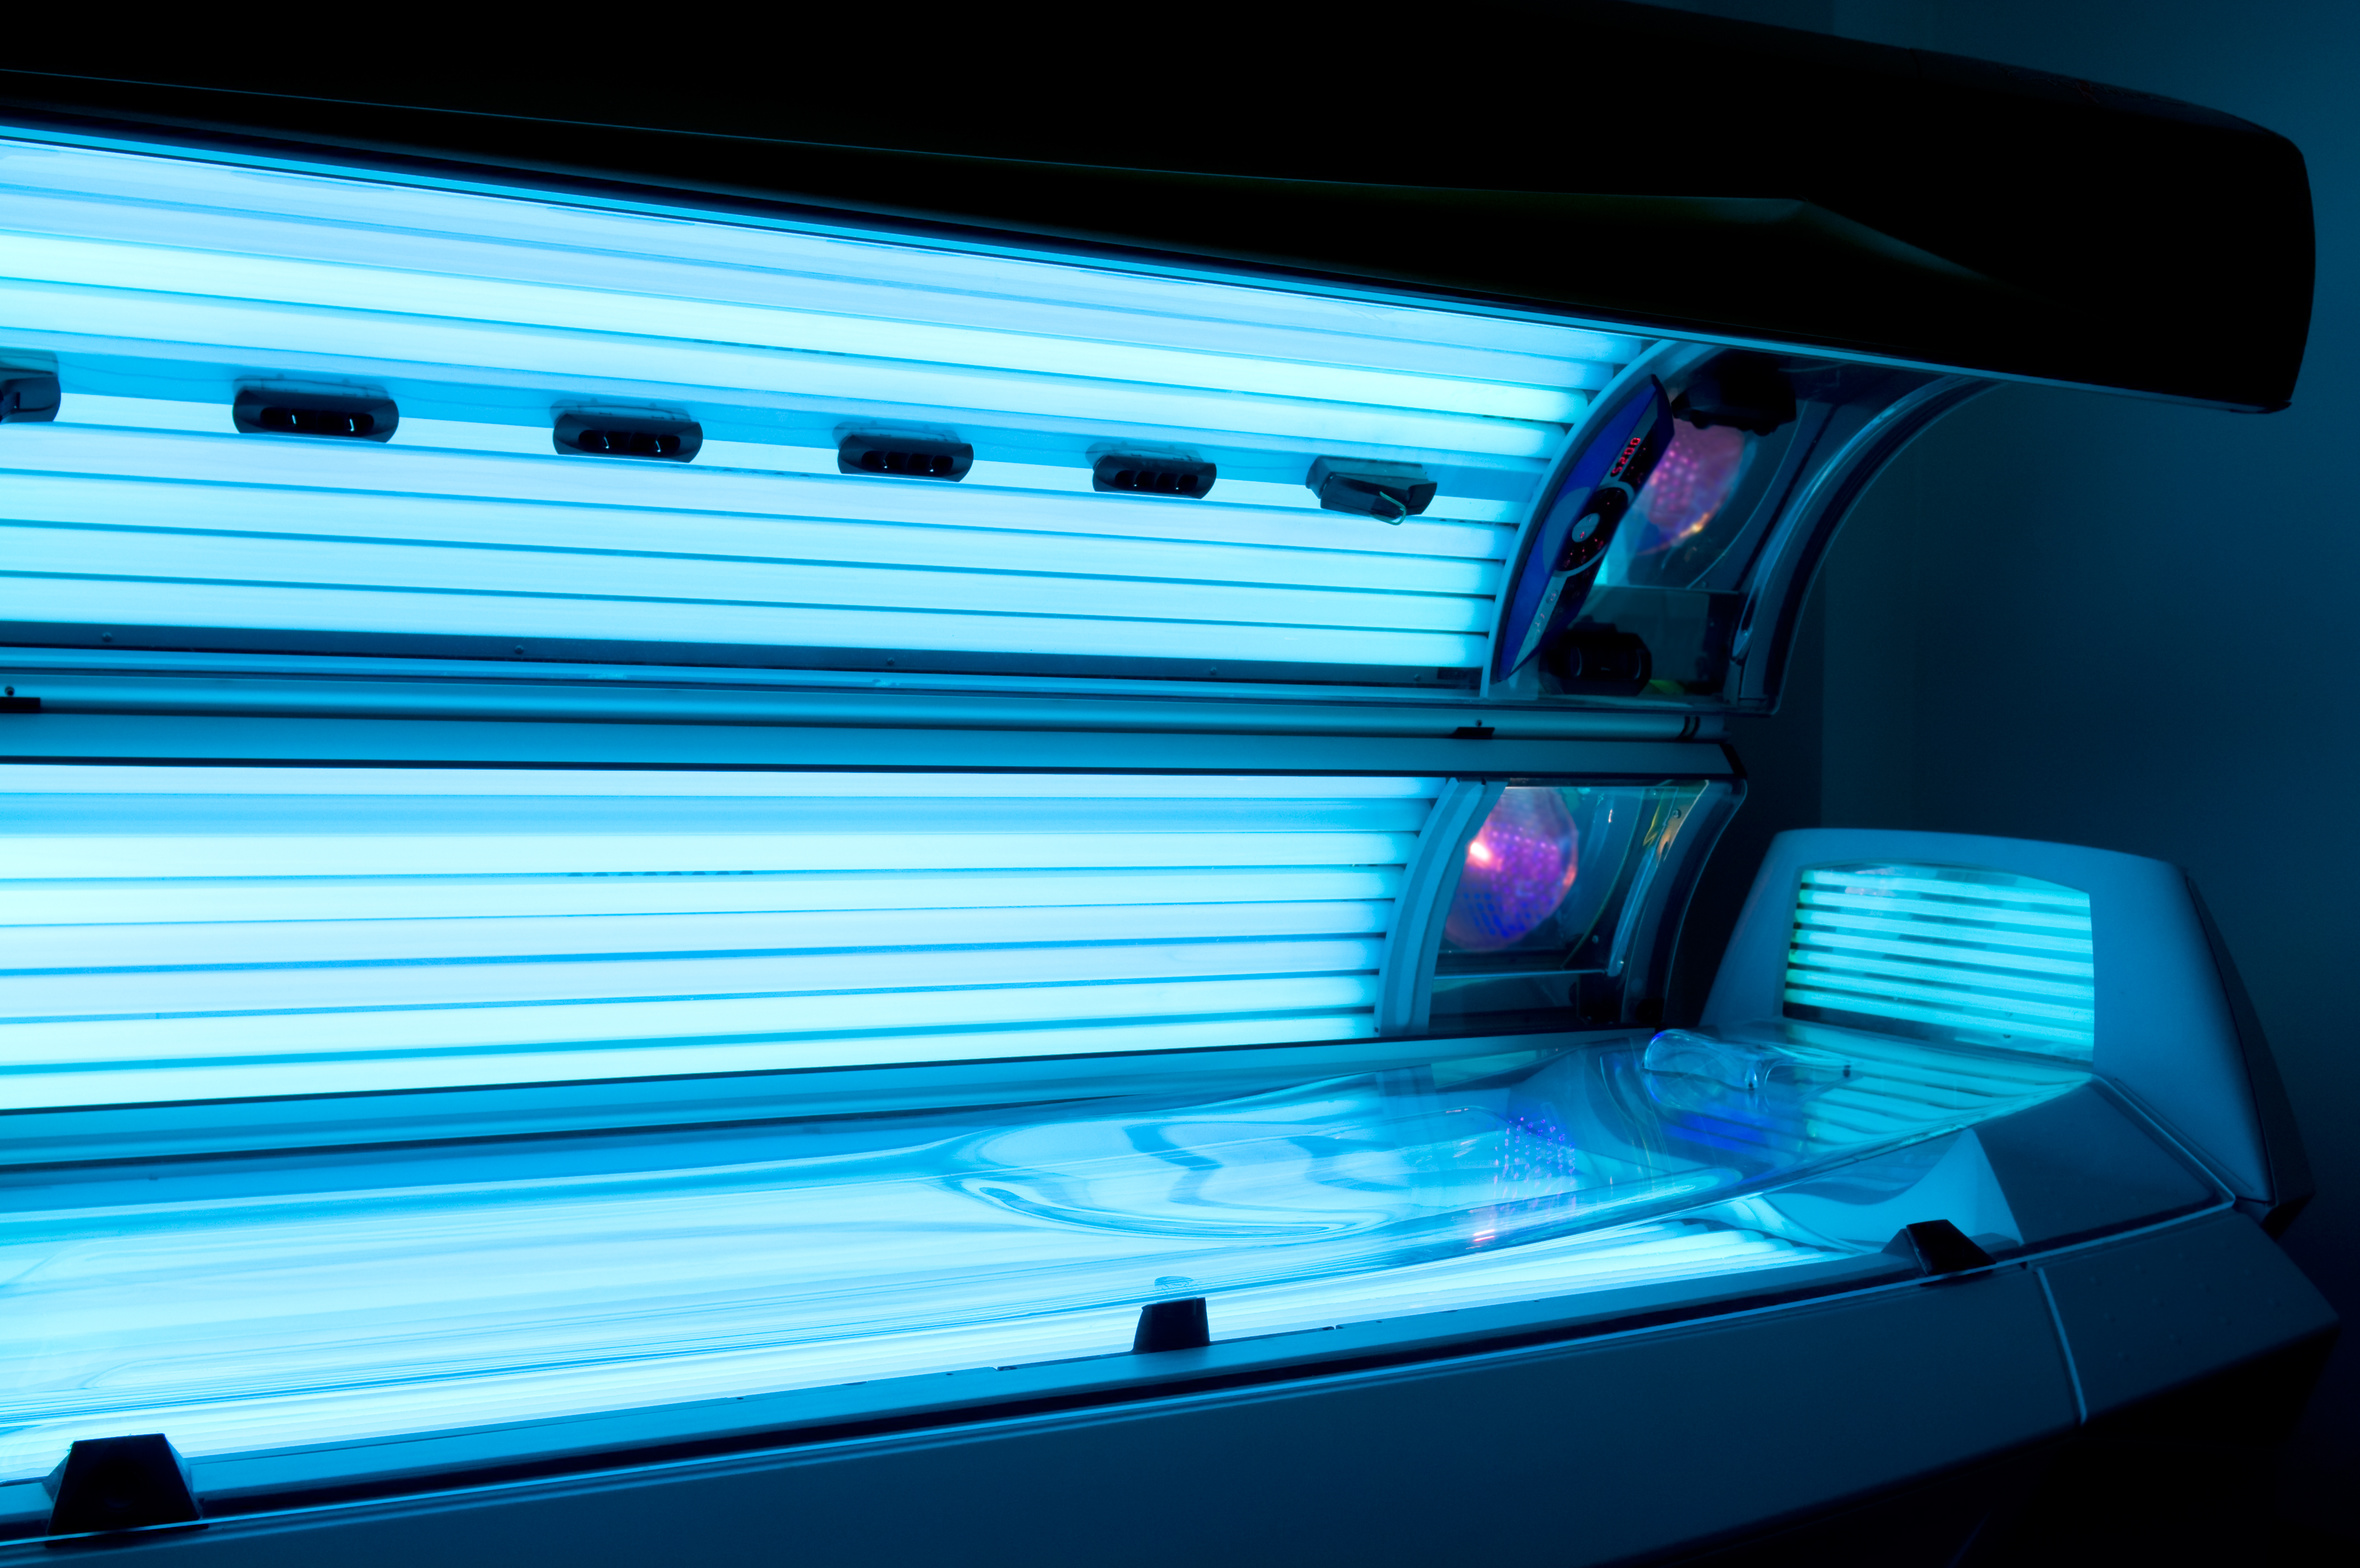 Skin Cancer From Tanning Beds Costs Us 343 Million Per Year